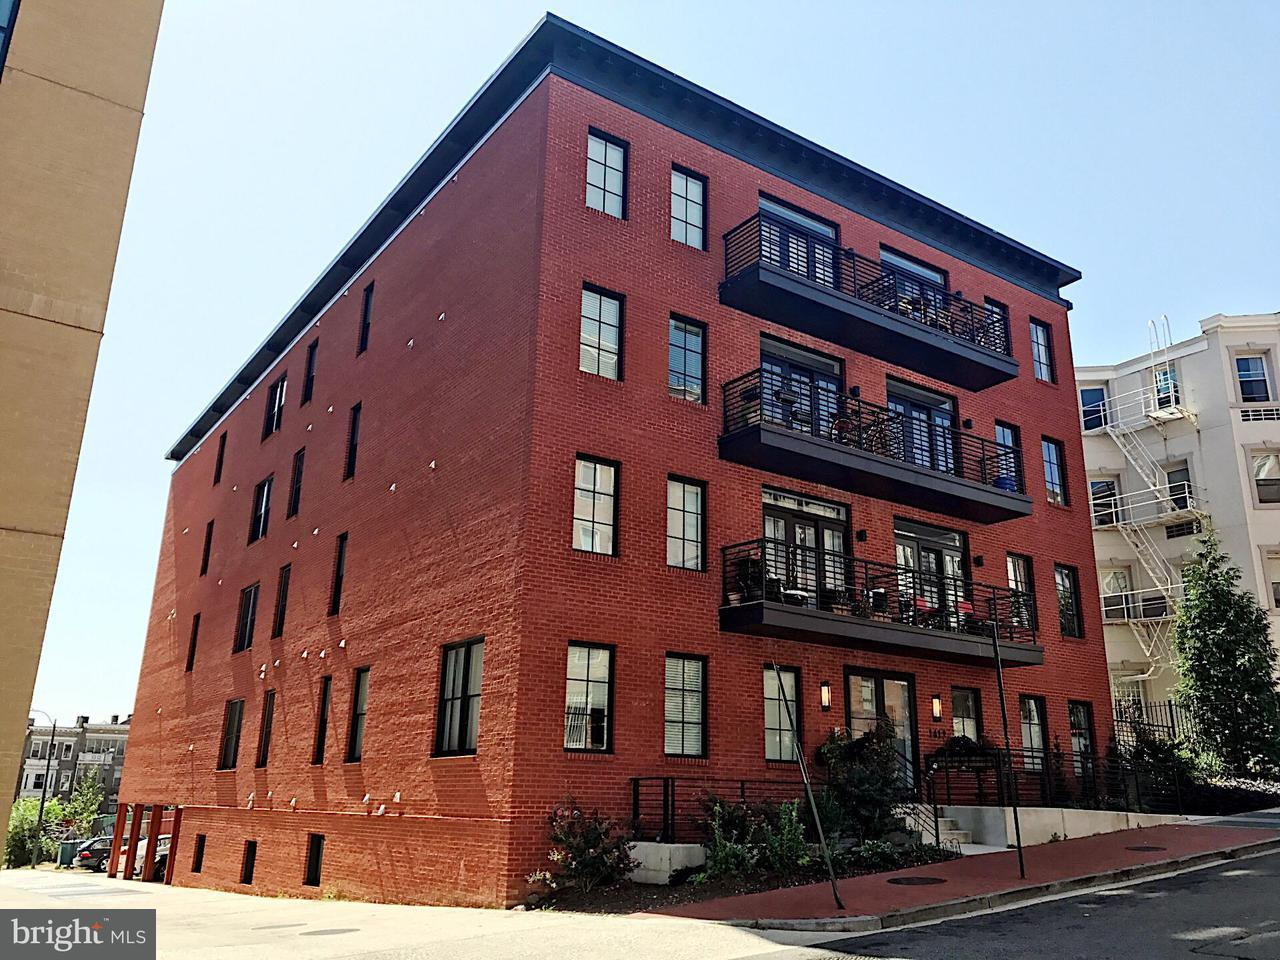 Condominium for Sale at 1412 Chapin St Nw #404 1412 Chapin St Nw #404 Washington, District Of Columbia 20009 United States